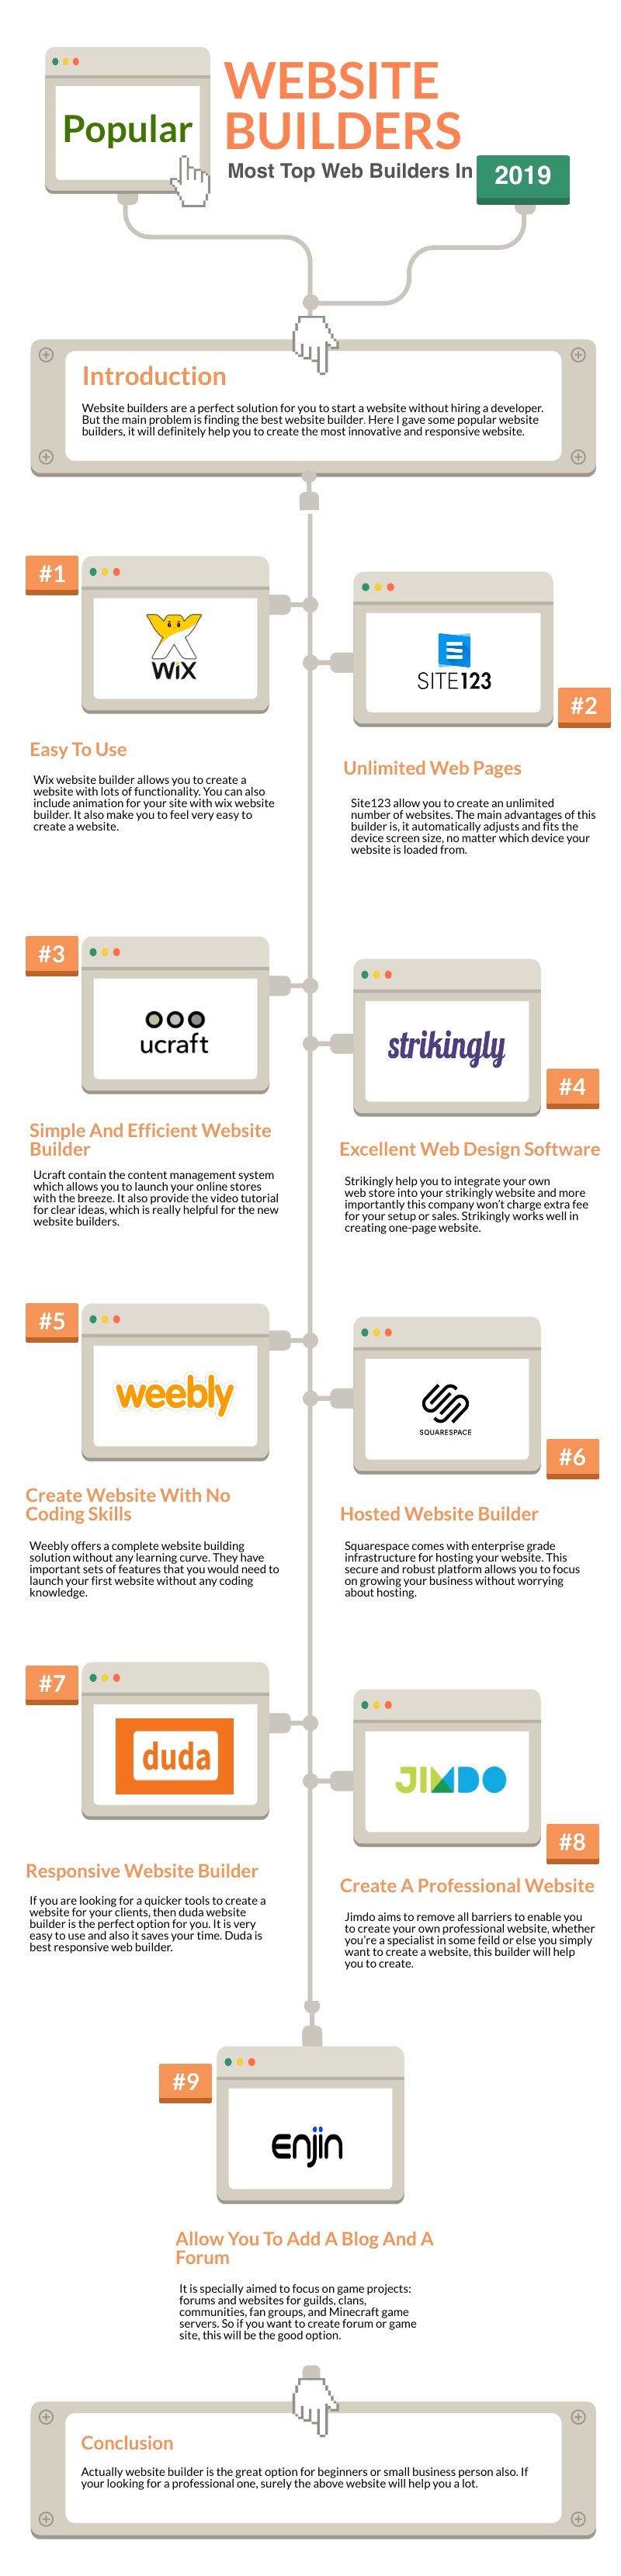 Choose The Right Website Builder